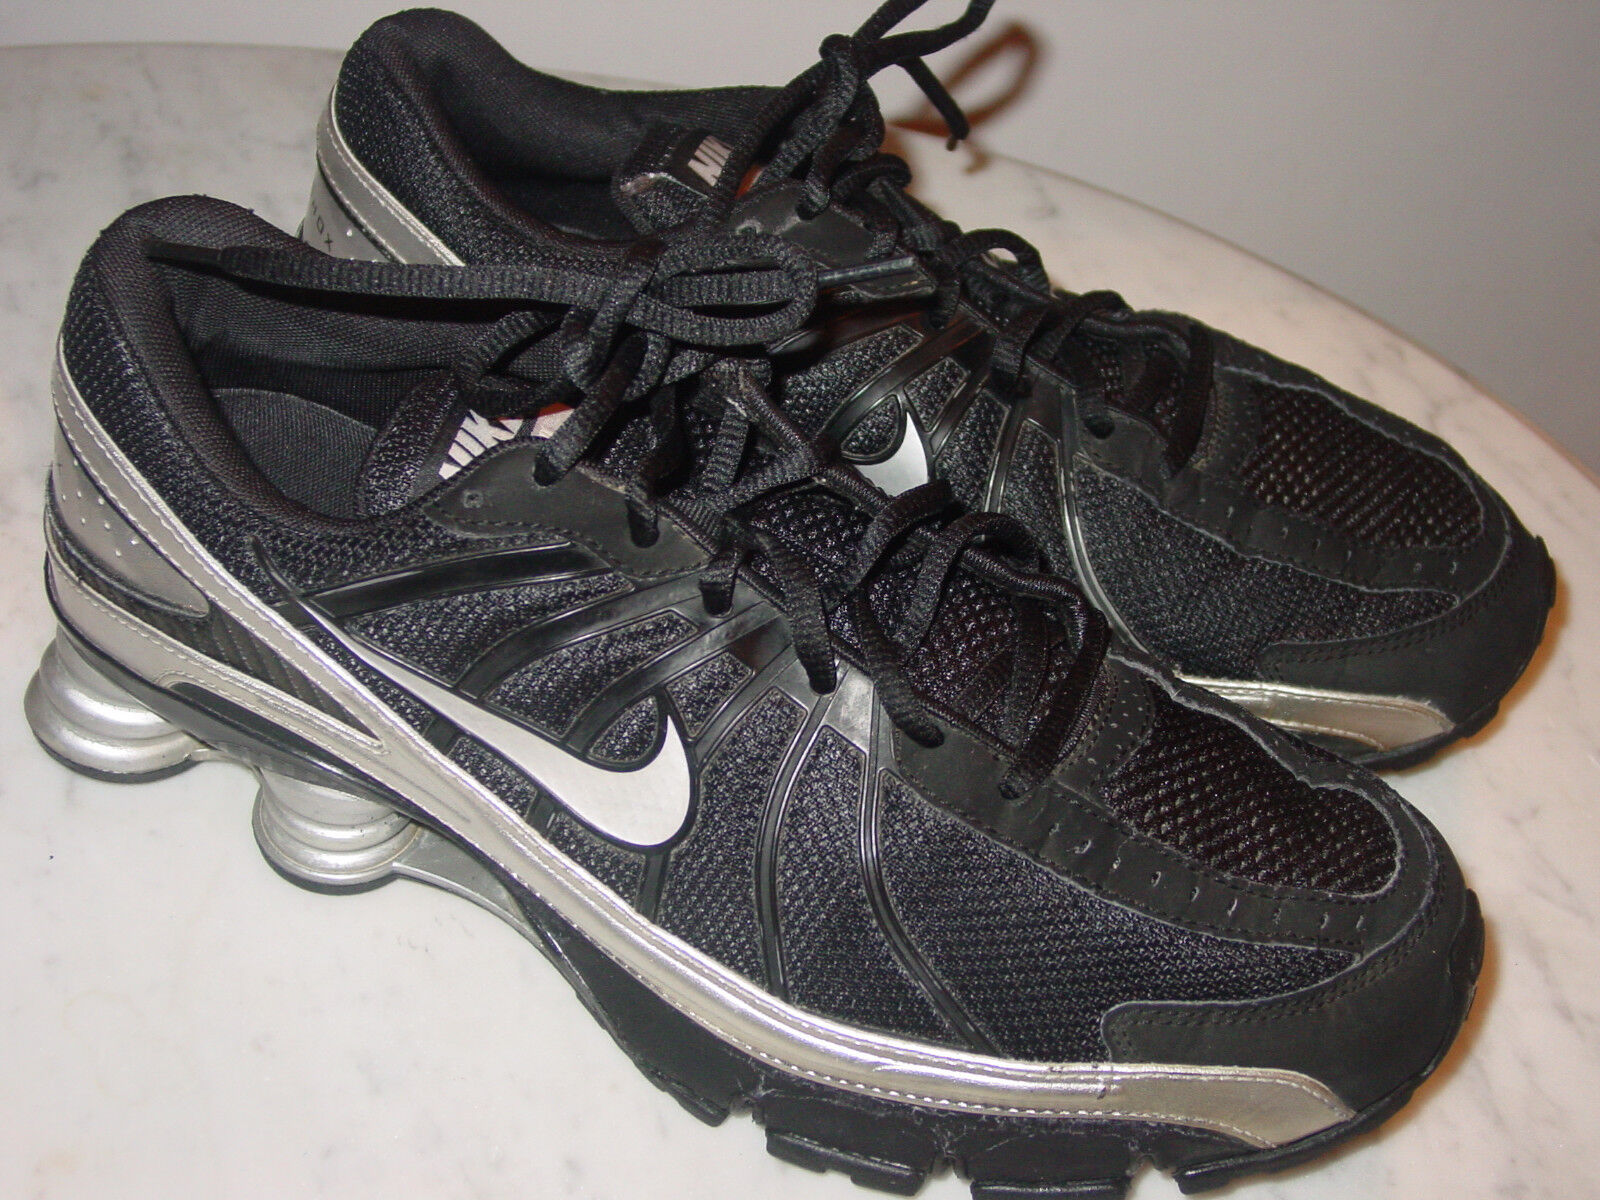 2008 Mens Nike Shox Turbo+ VII White Black Silver shoes  Size 11 Sold As Is